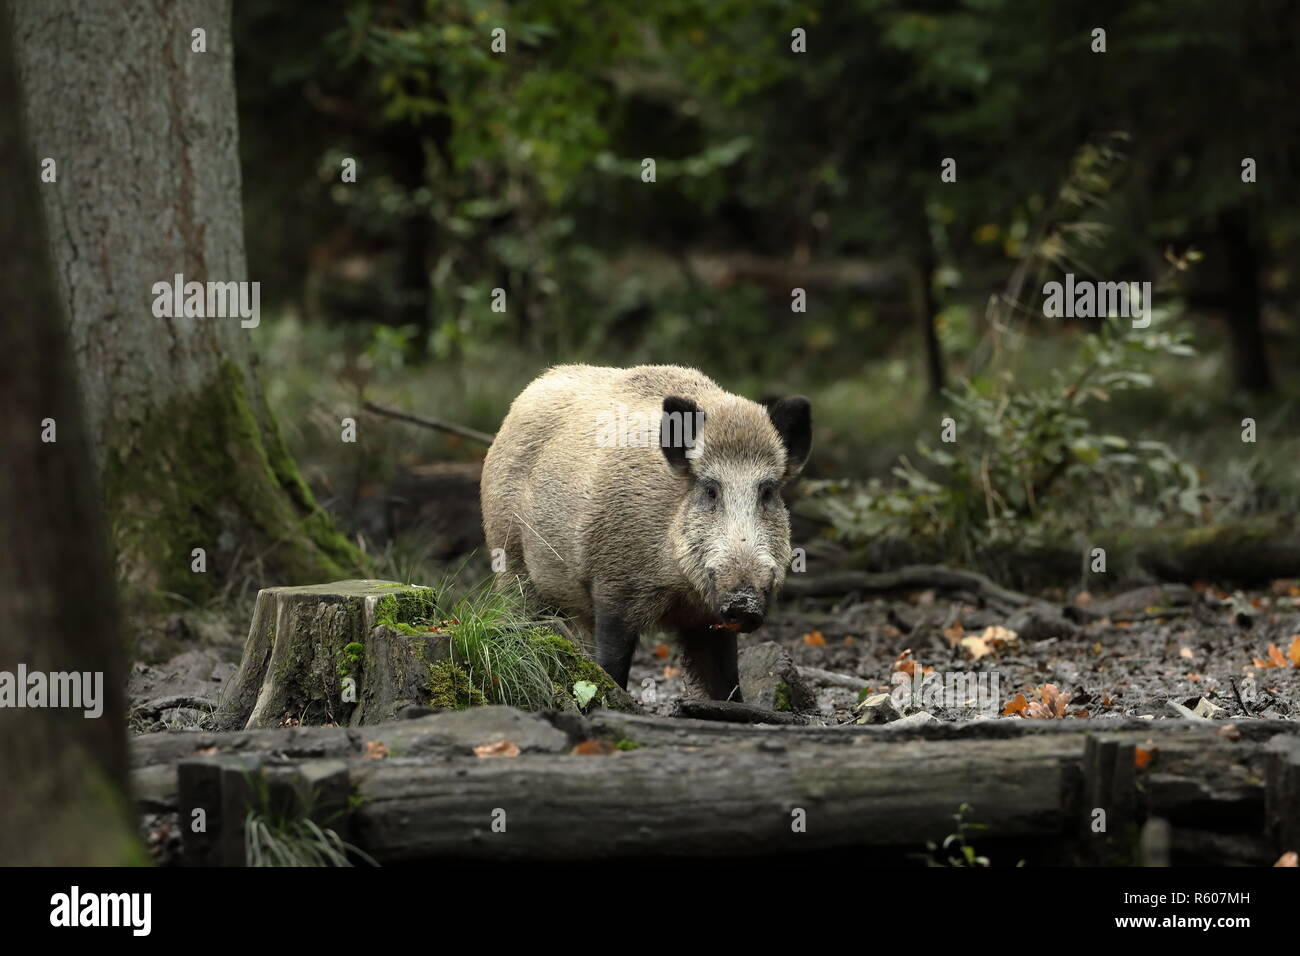 wild boar in the forest - Stock Image